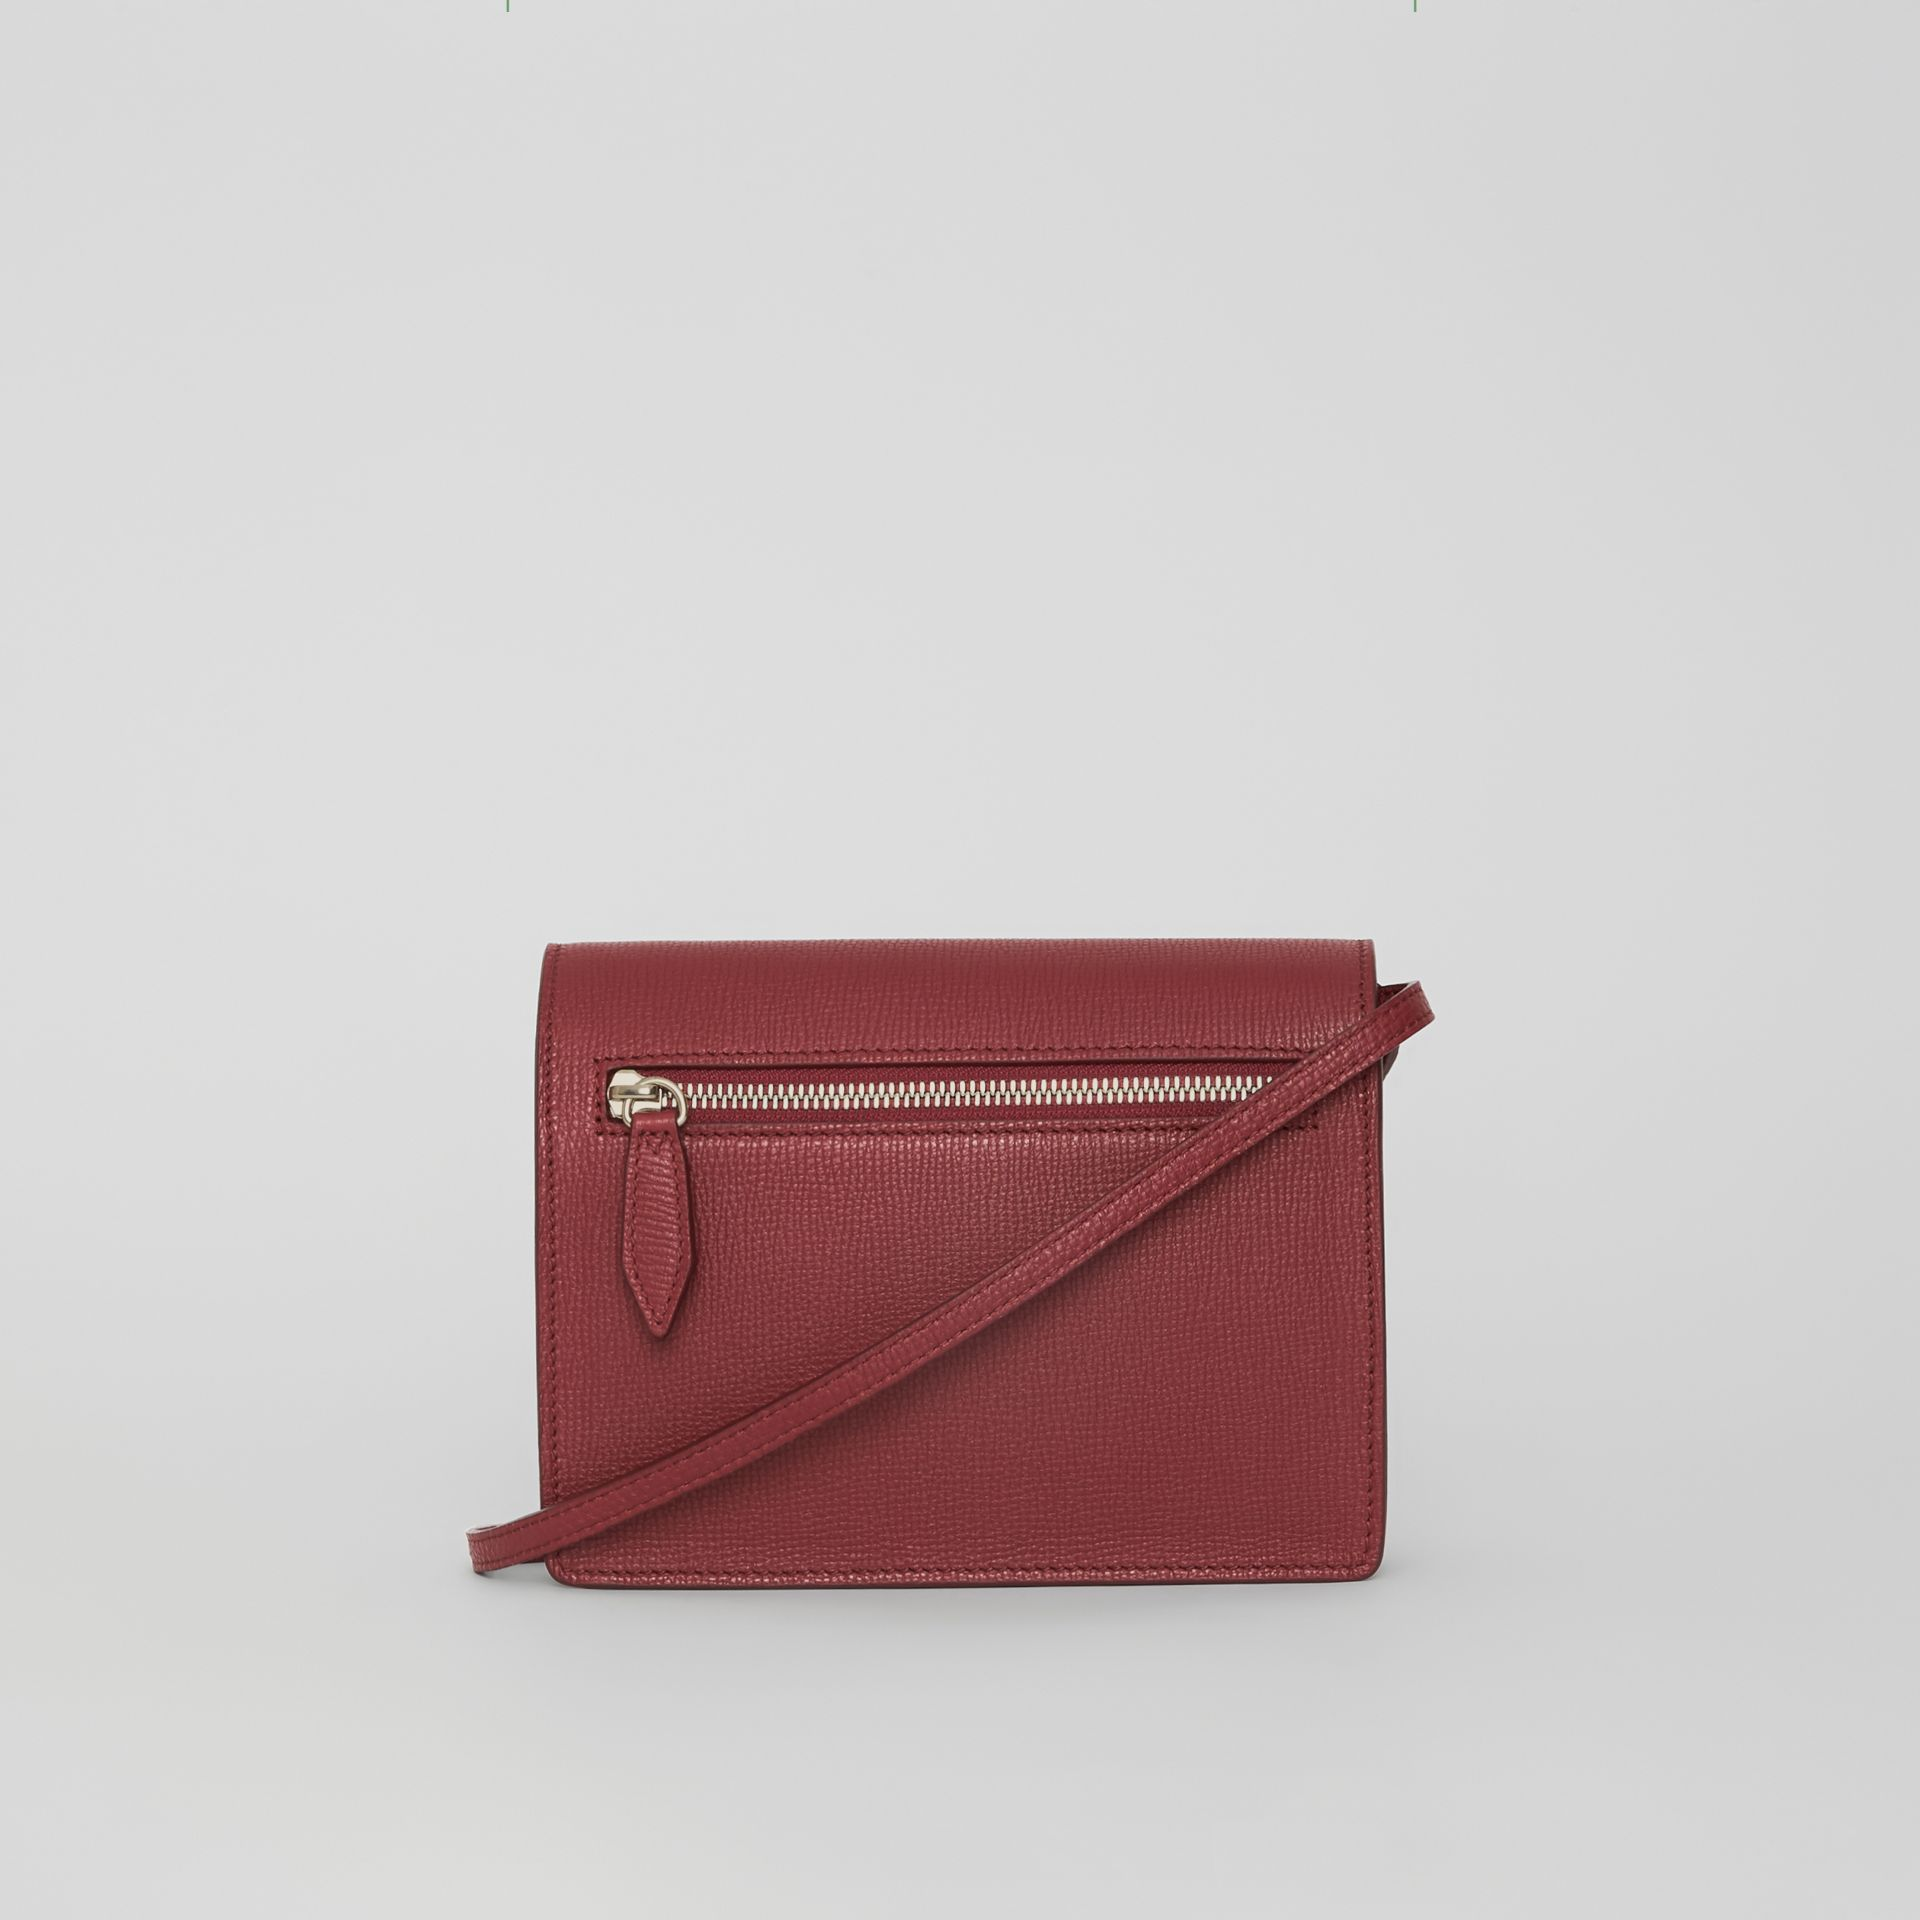 Mini Leather and Vintage Check Crossbody Bag in Crimson - Women | Burberry - gallery image 5